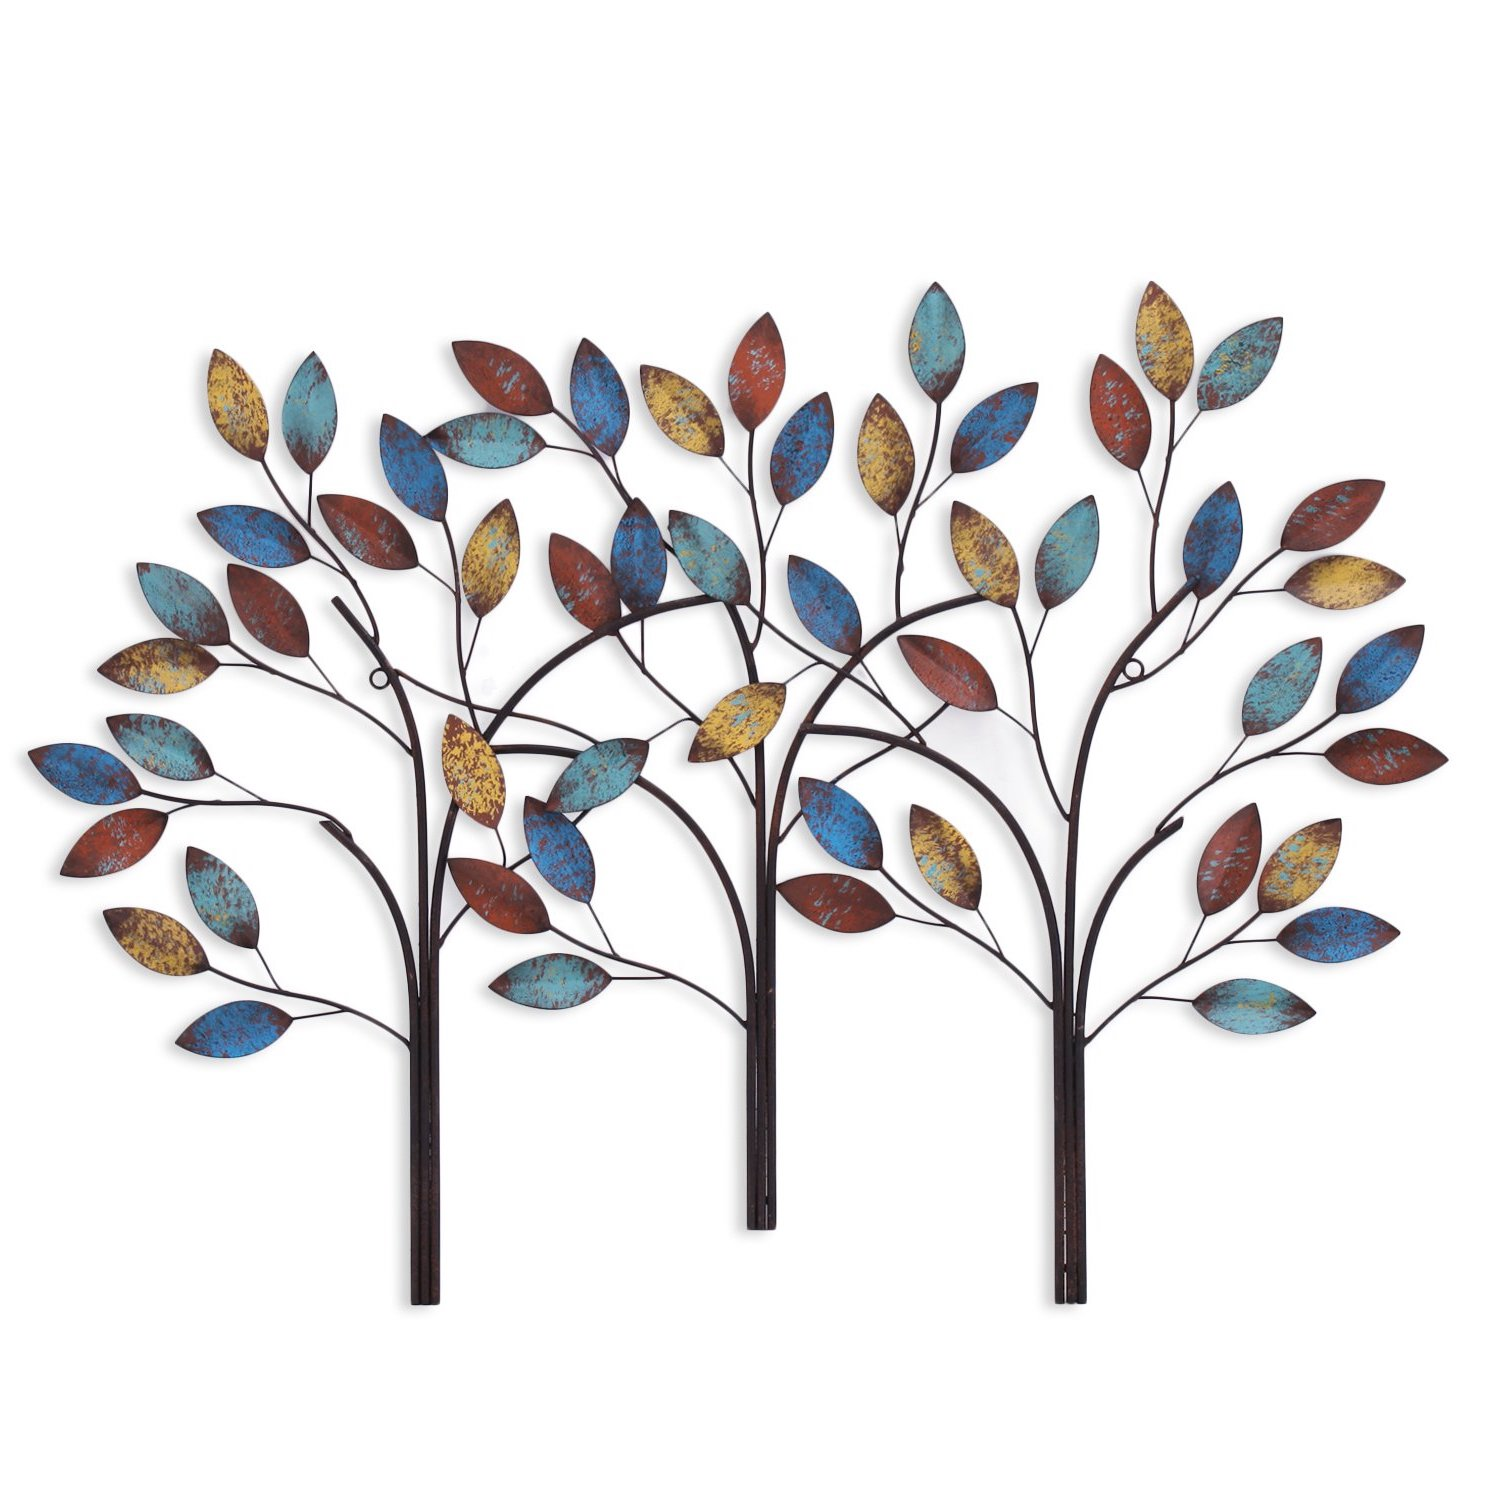 Asense Tree Of Life Metal Wall Art Sculptures Home Decor Life Decoration (Image 2 of 10)